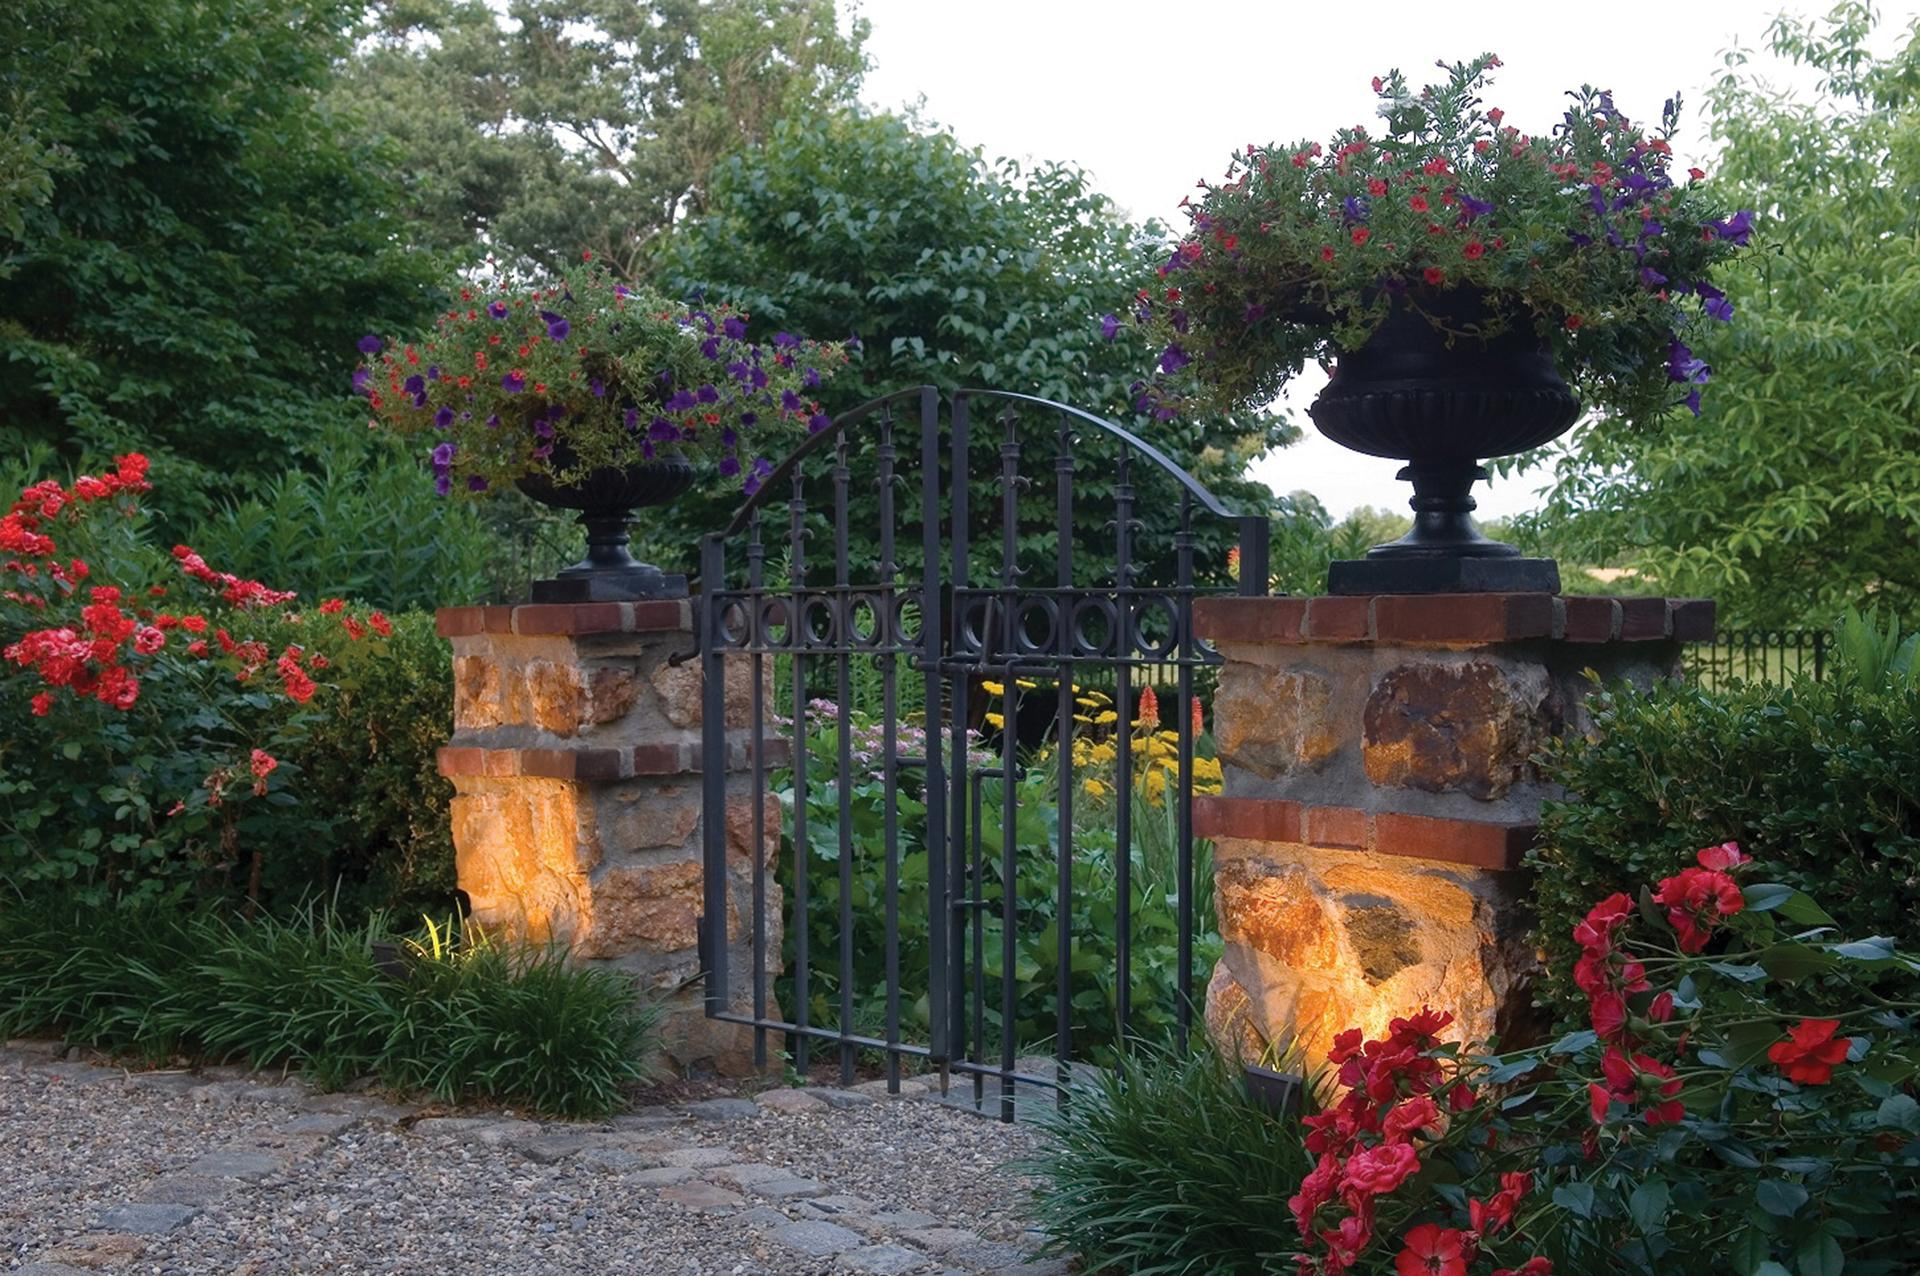 stunning-gate-iron-work-outdoor-lighting-nightlight-stone-piers-columns-statue-gardening